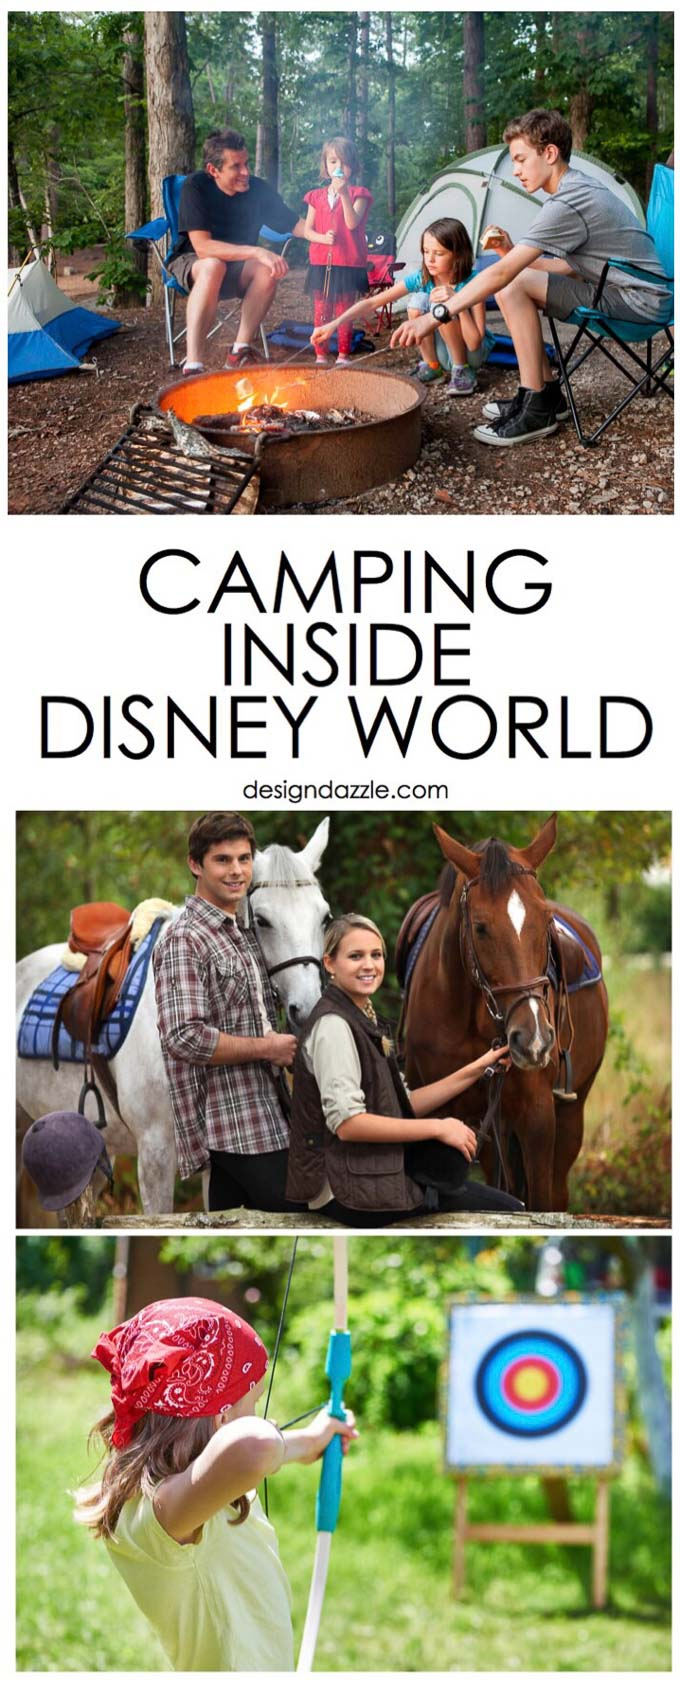 Did you know that Disney World is a hot spot for camping? Disney's Fort Wilderness Campground is fun for the whole family. Read more and find out how to camp in Disney World!   Design Dazzle